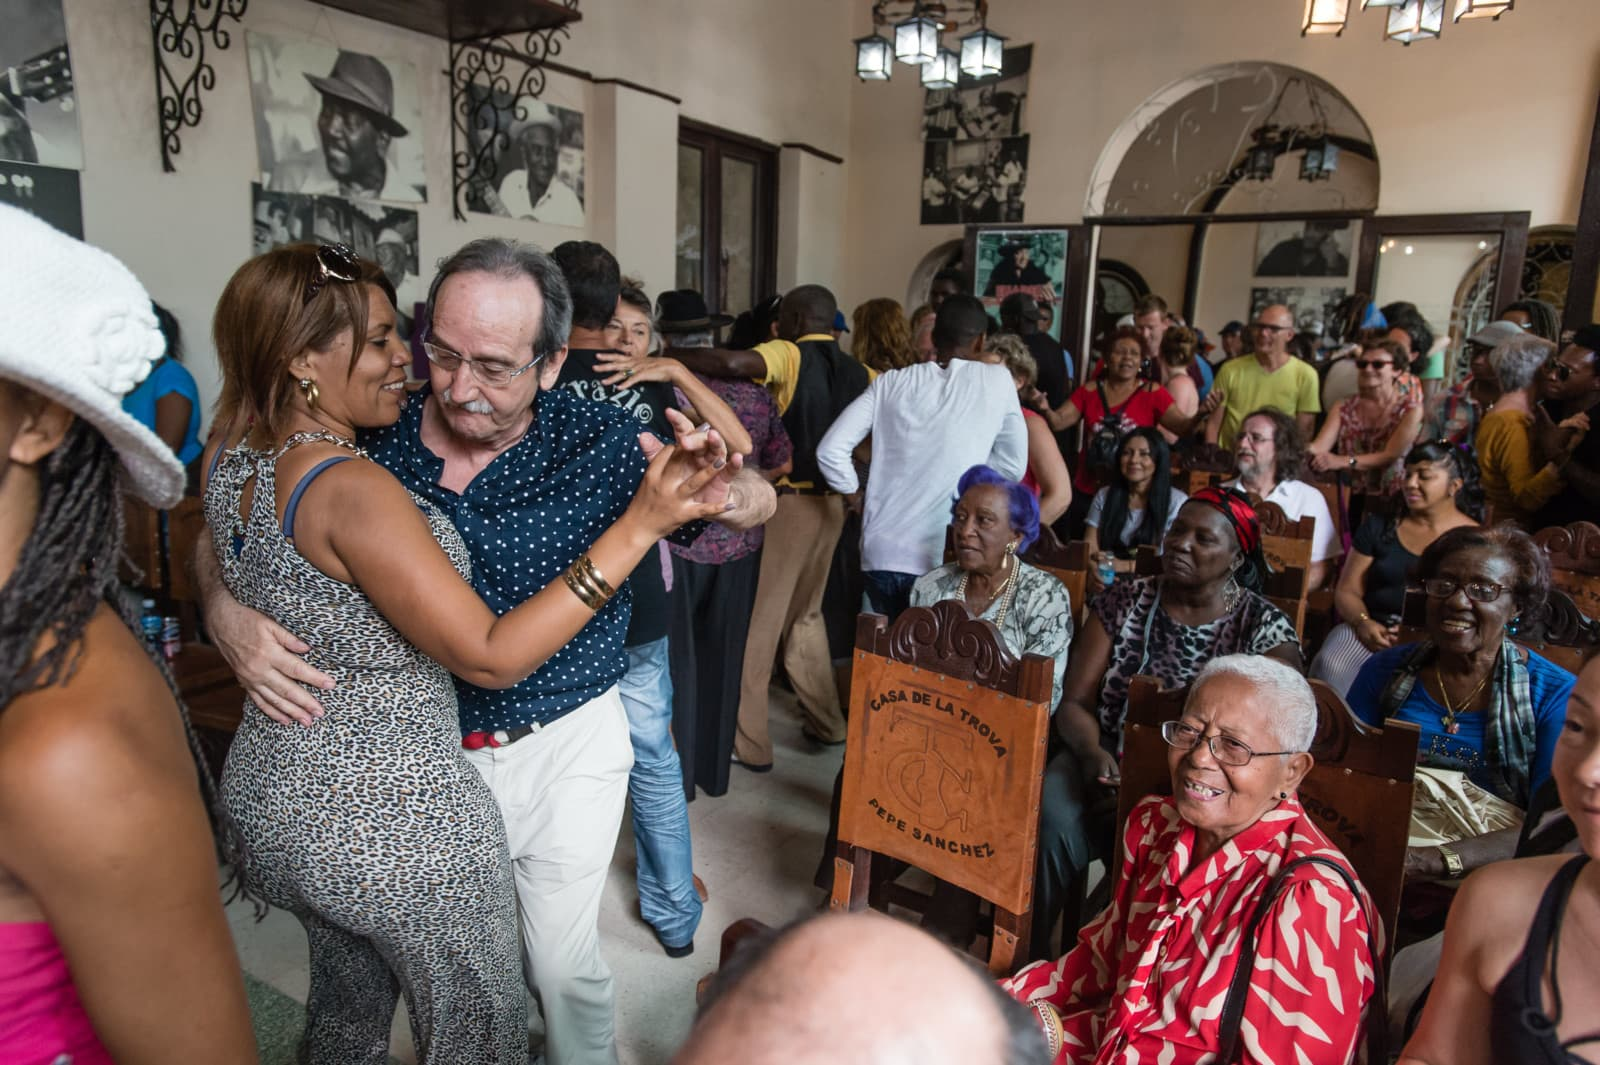 people-dancing-santiago-de-cuba-london-freelance-photographer-richard-isaac-3200